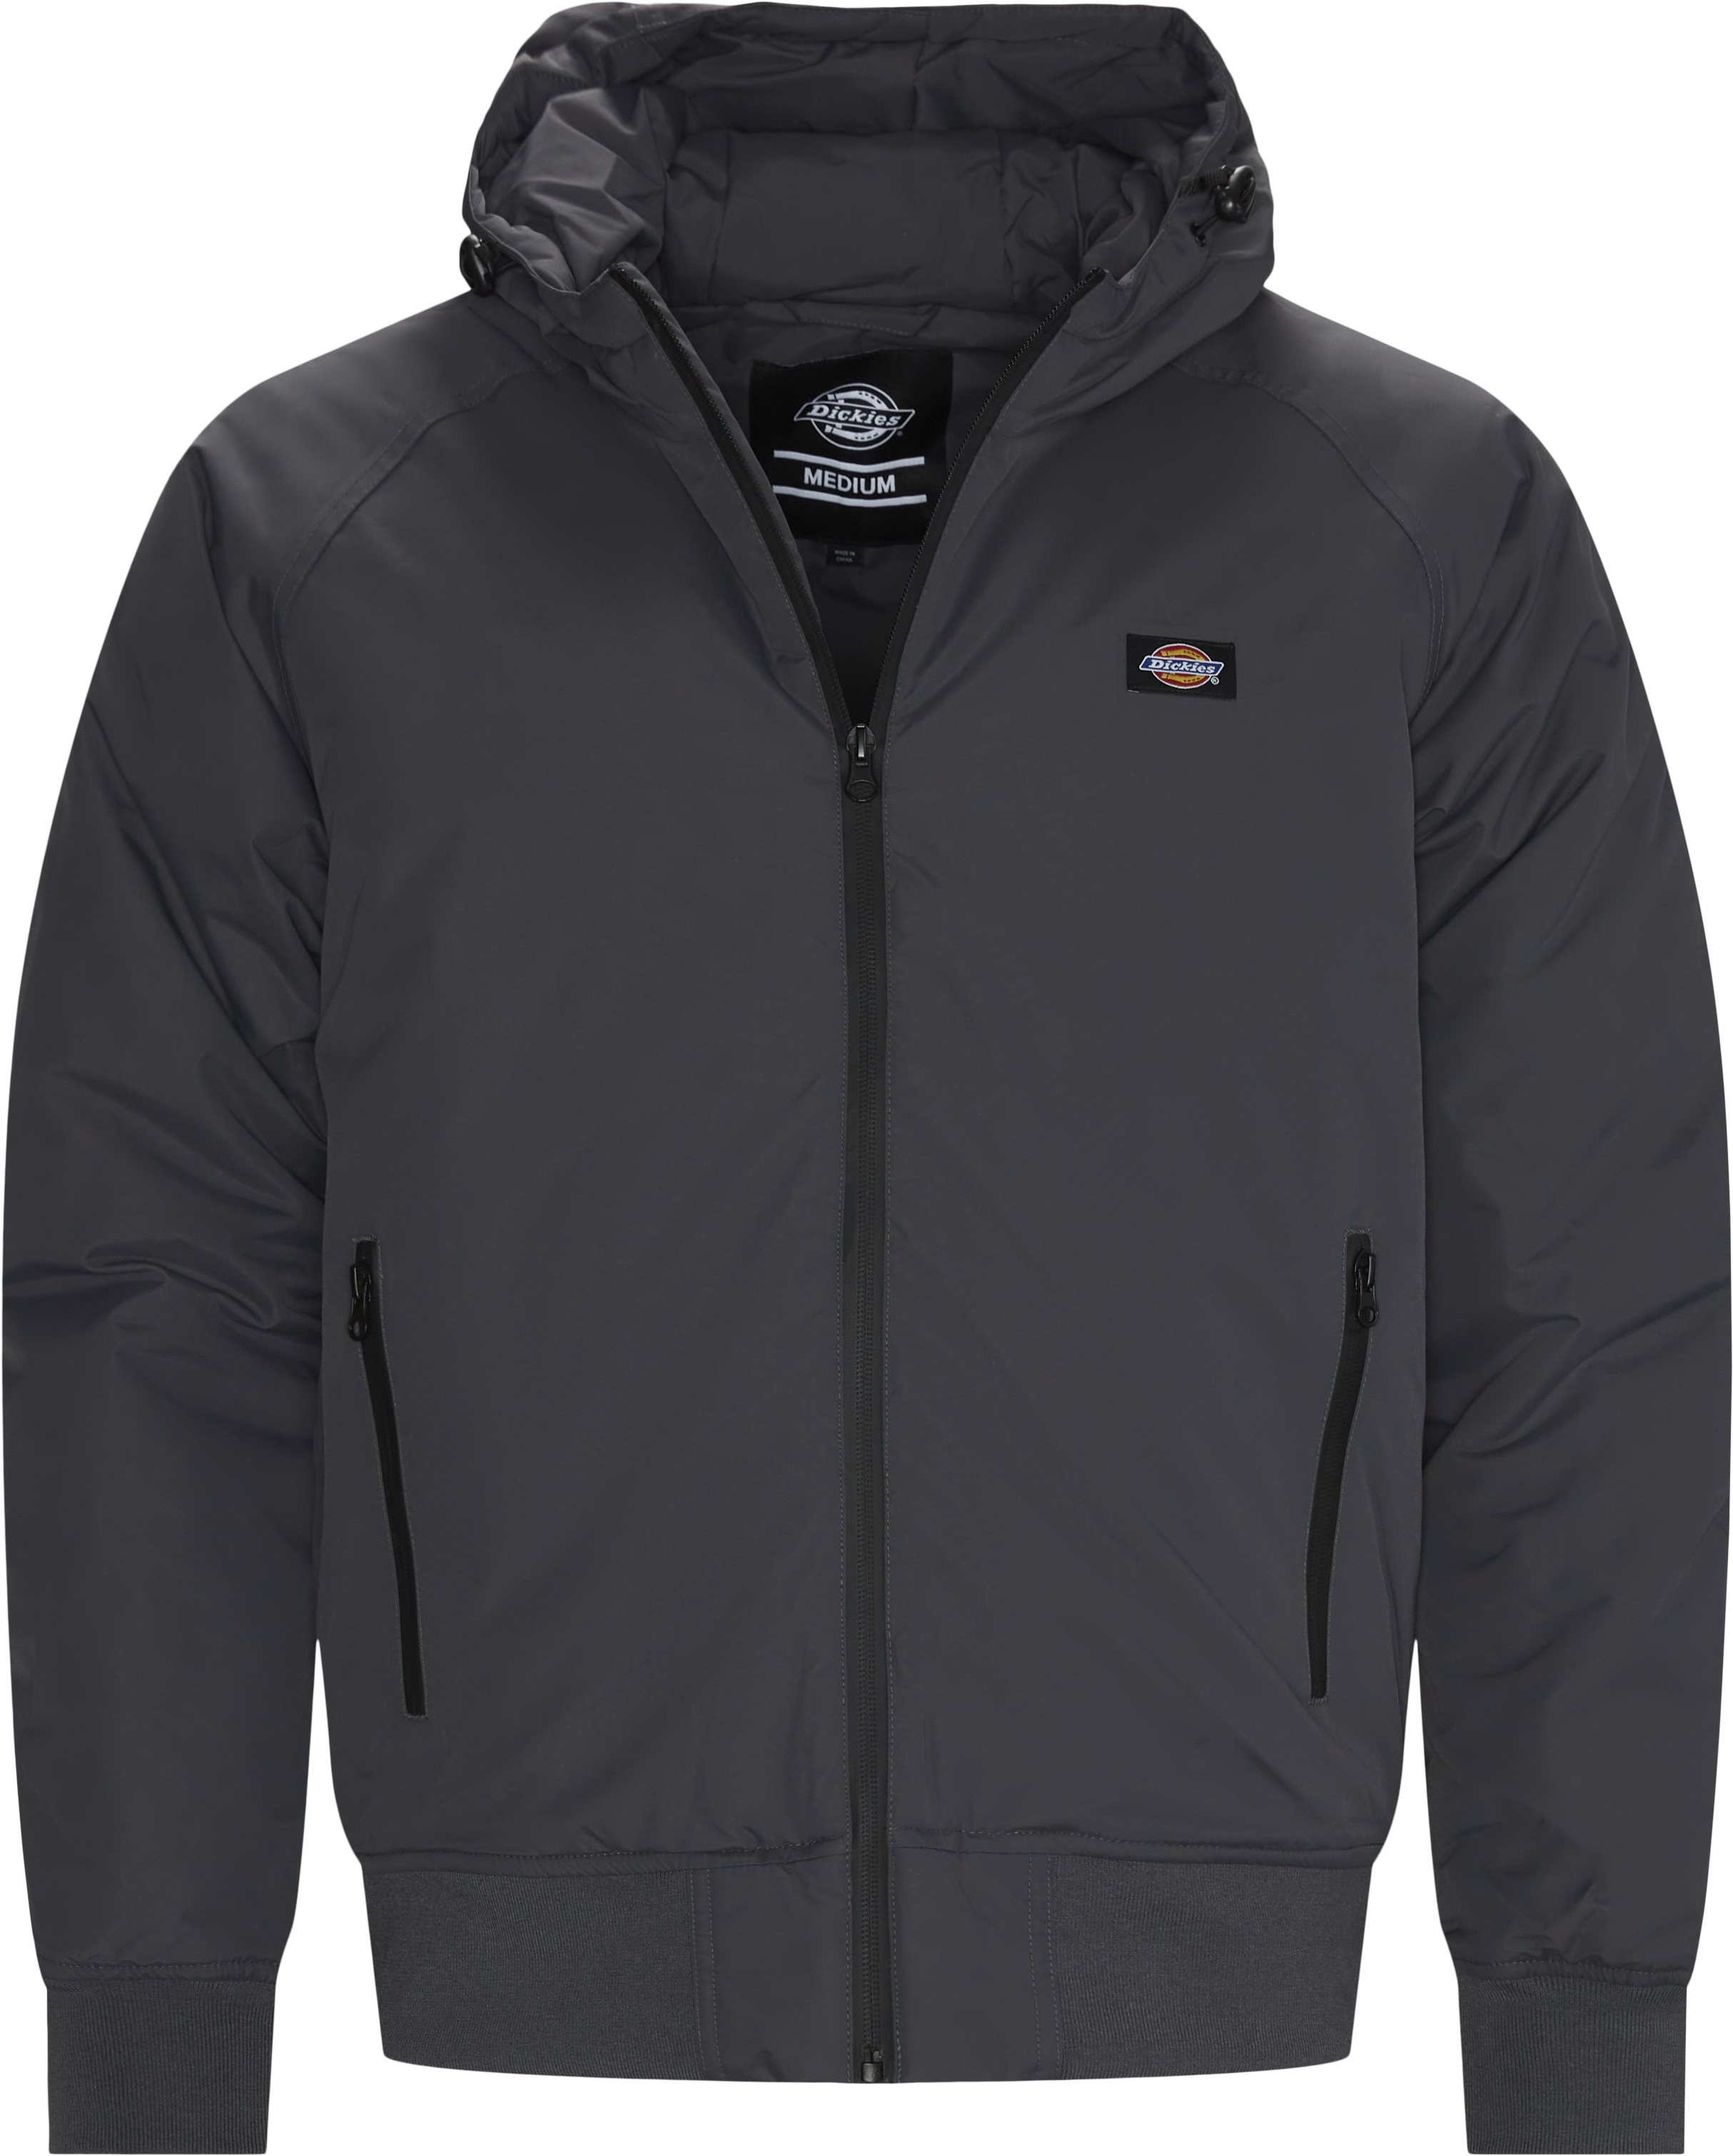 New Sarpy Jacket - Jakker - Regular - Grå